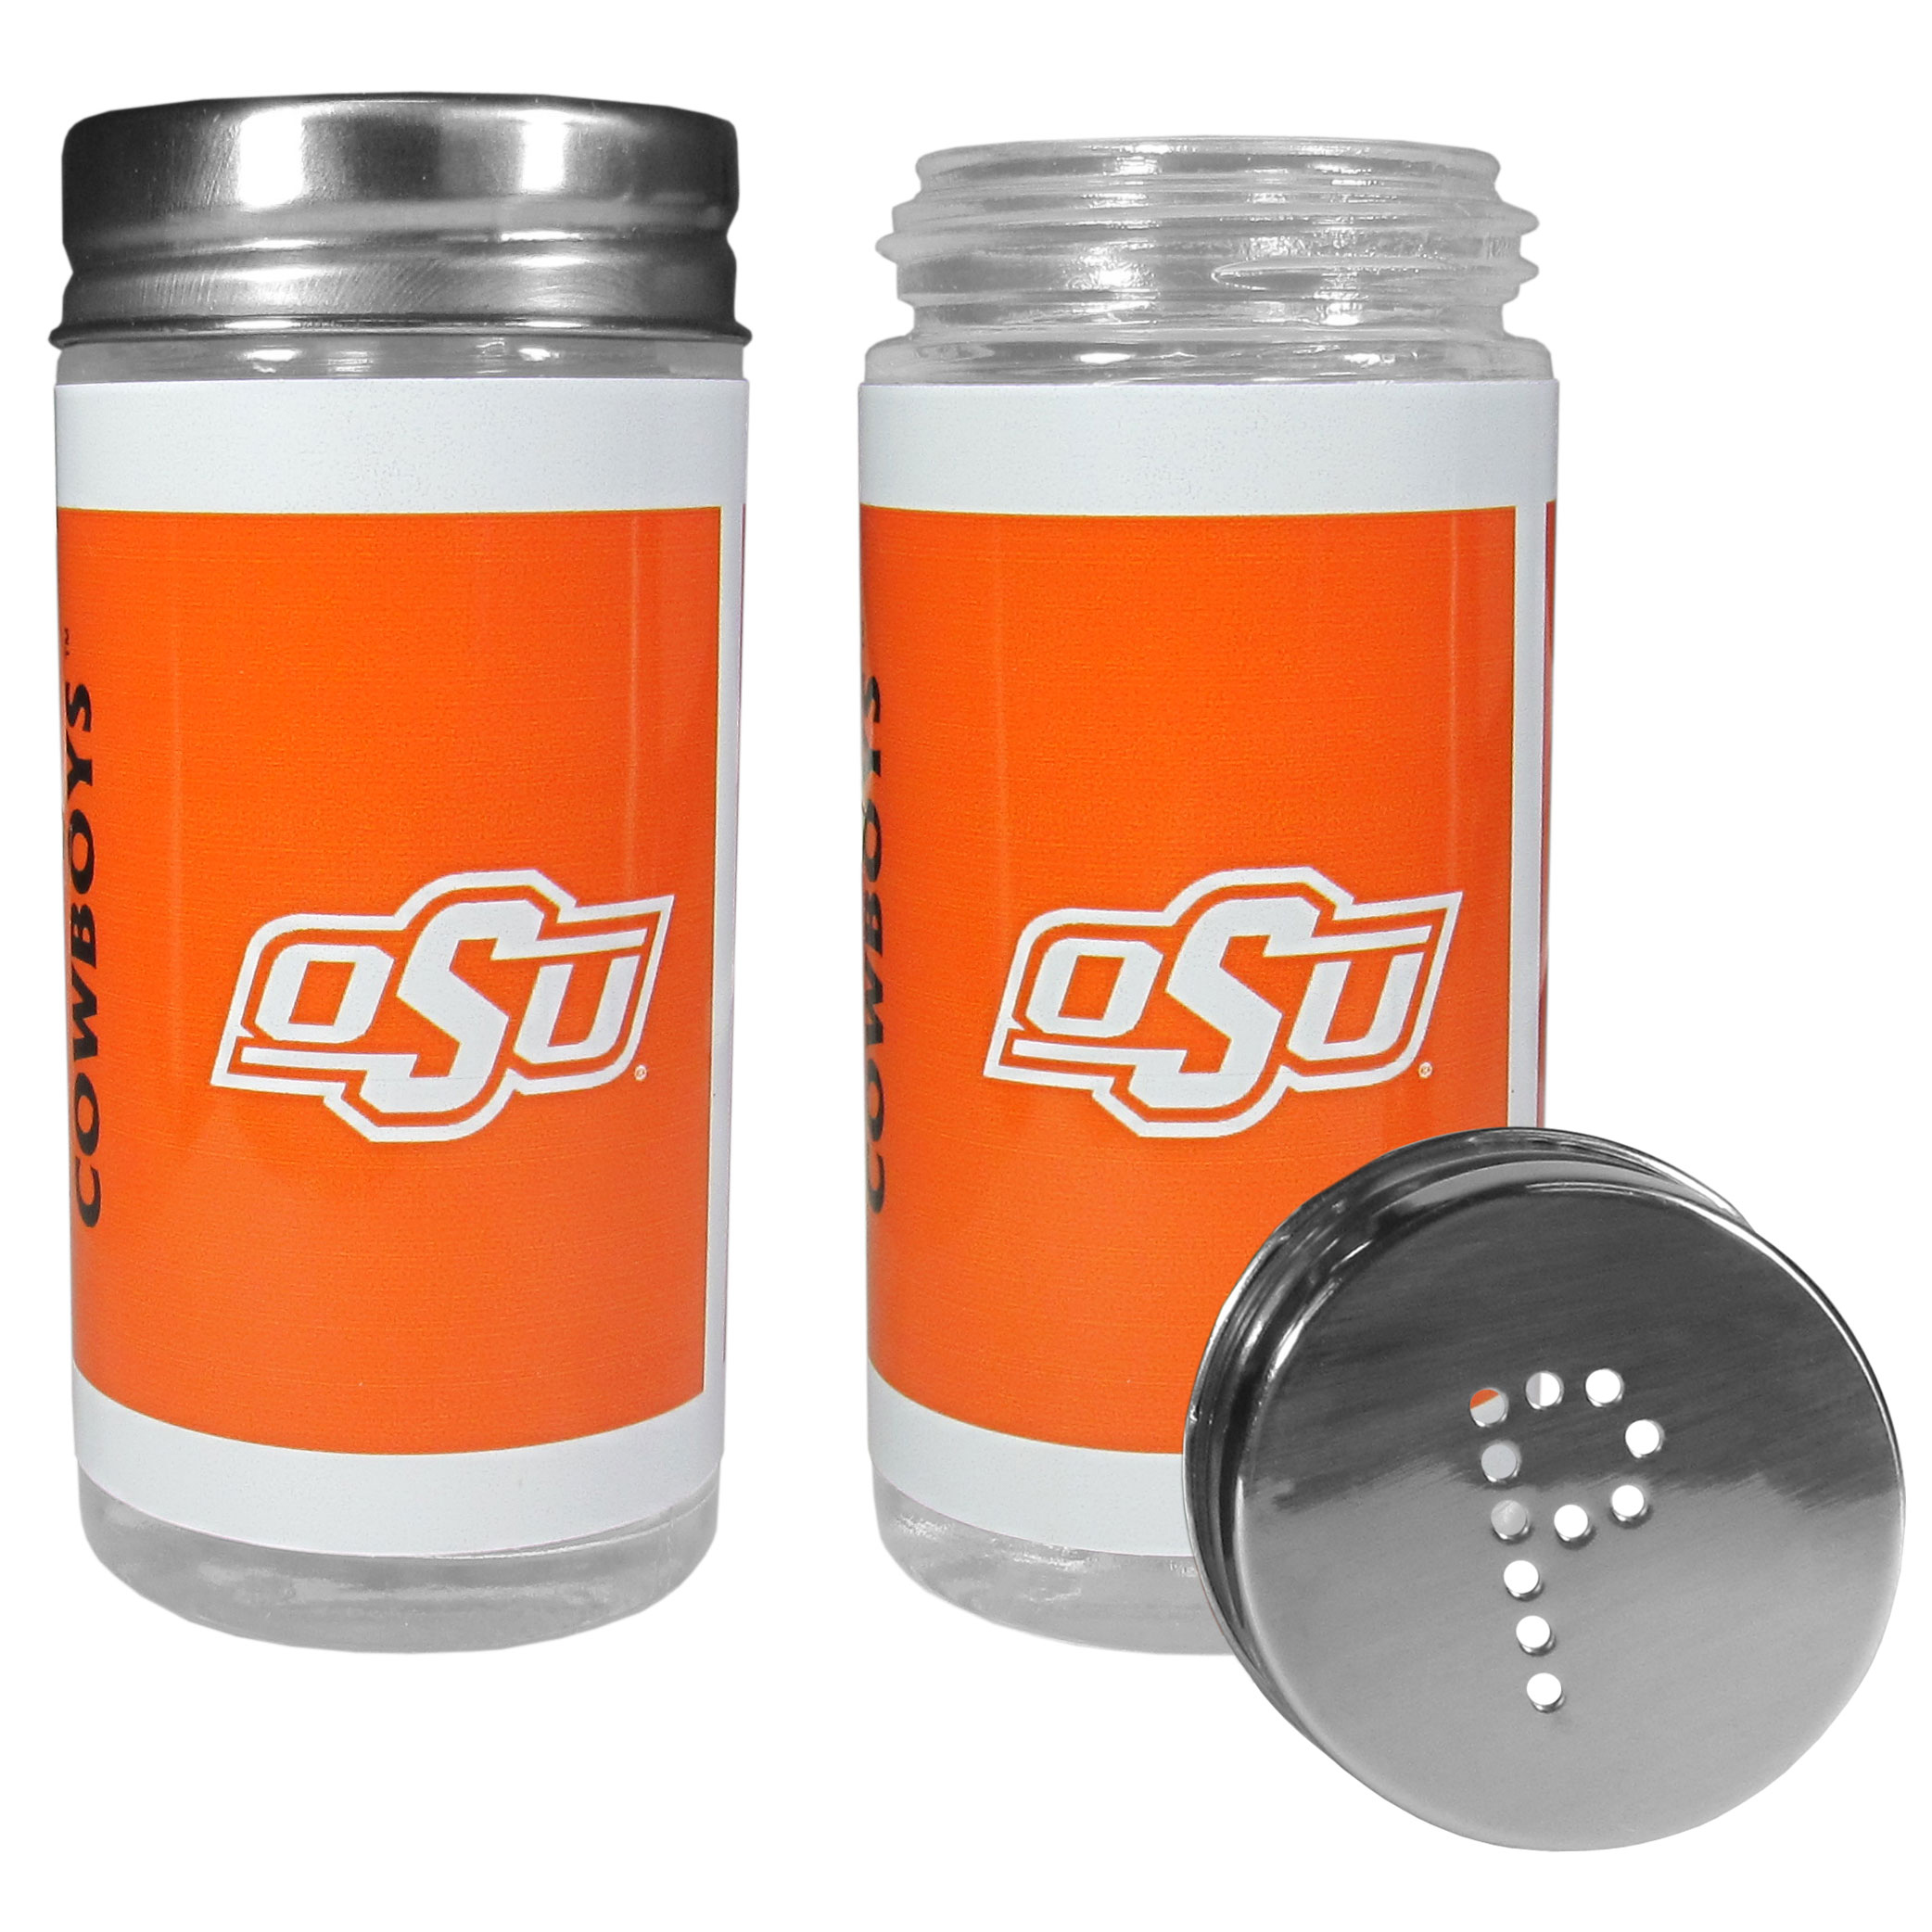 Oklahoma St. Cowboys Tailgater Salt & Pepper Shakers - No tailgate party is complete without your Oklahoma St. Cowboys salt & pepper shakers featuring bright team graphics. The glass shakers are 3.75 inches tall and the screw top lids have holes that spell out P and S. These team shakers are a great grill accessory whether you are barbecuing on the patio, picnicing or having a game day party.